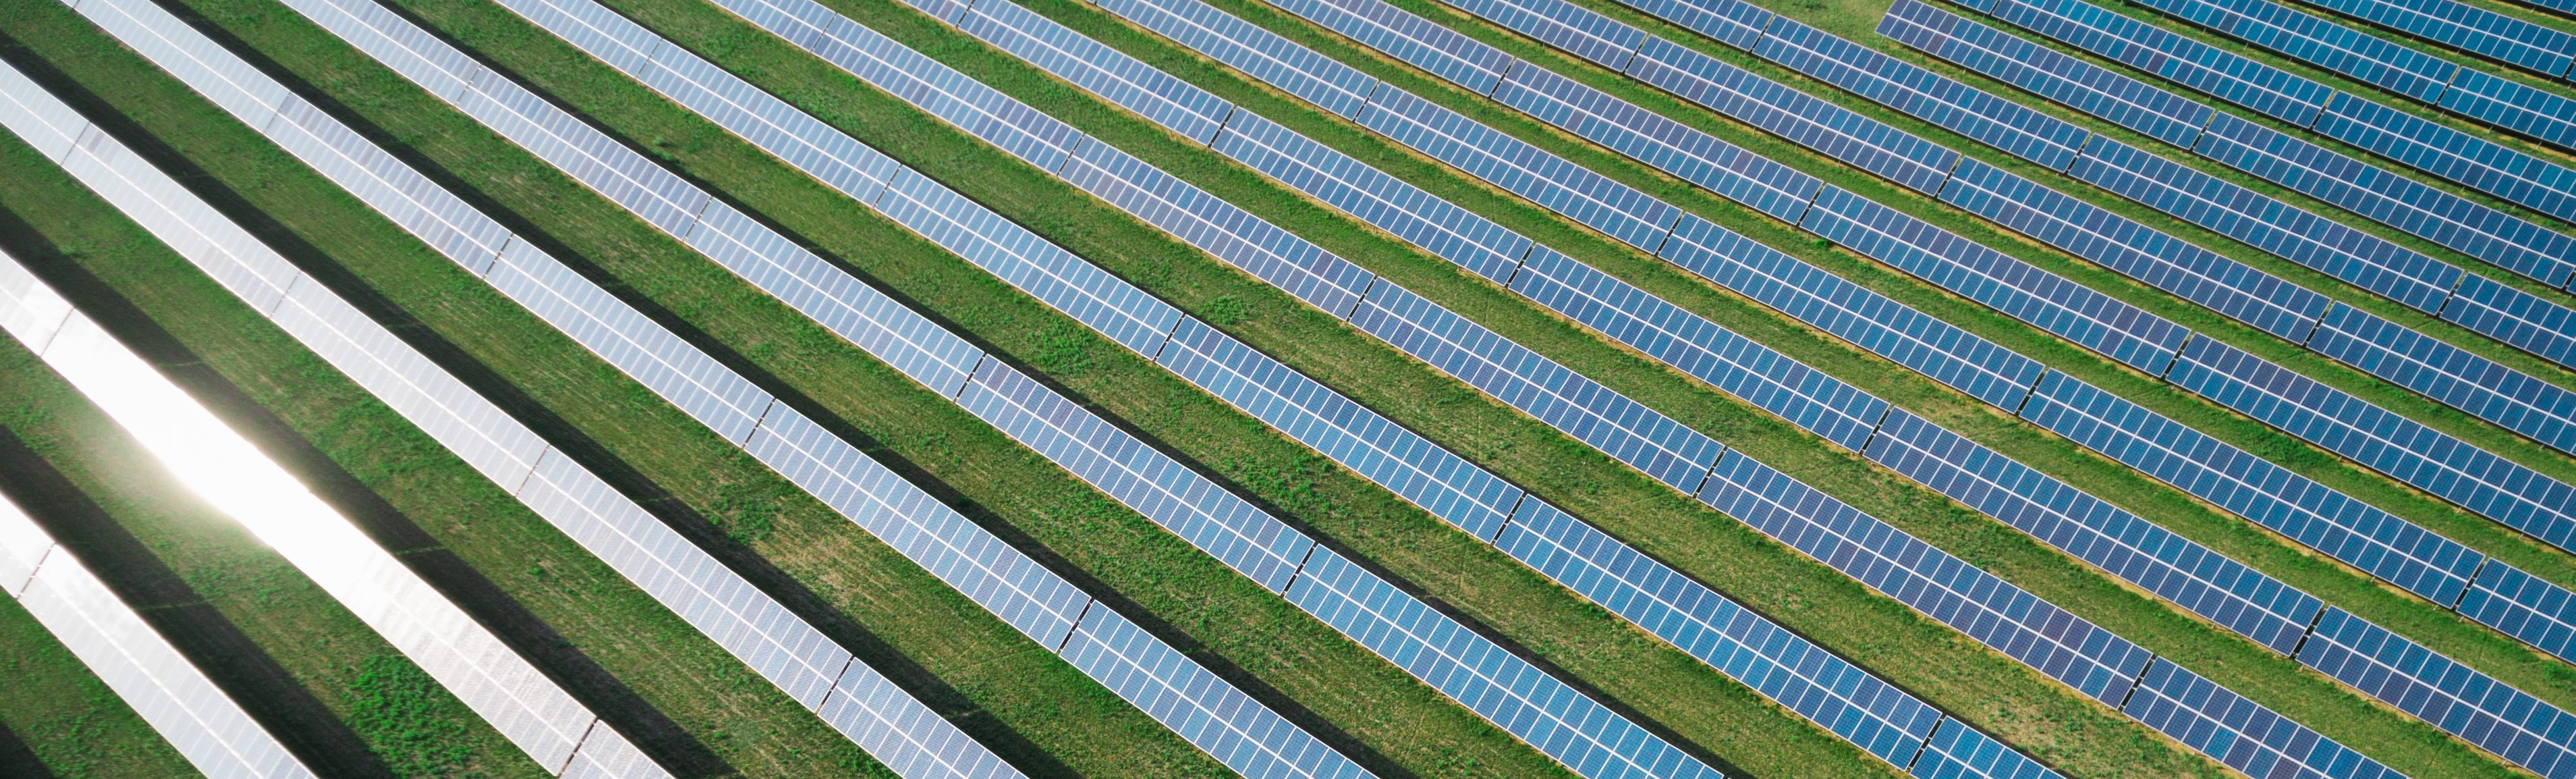 solar-power-plant-from-above-2-picjumbo-com